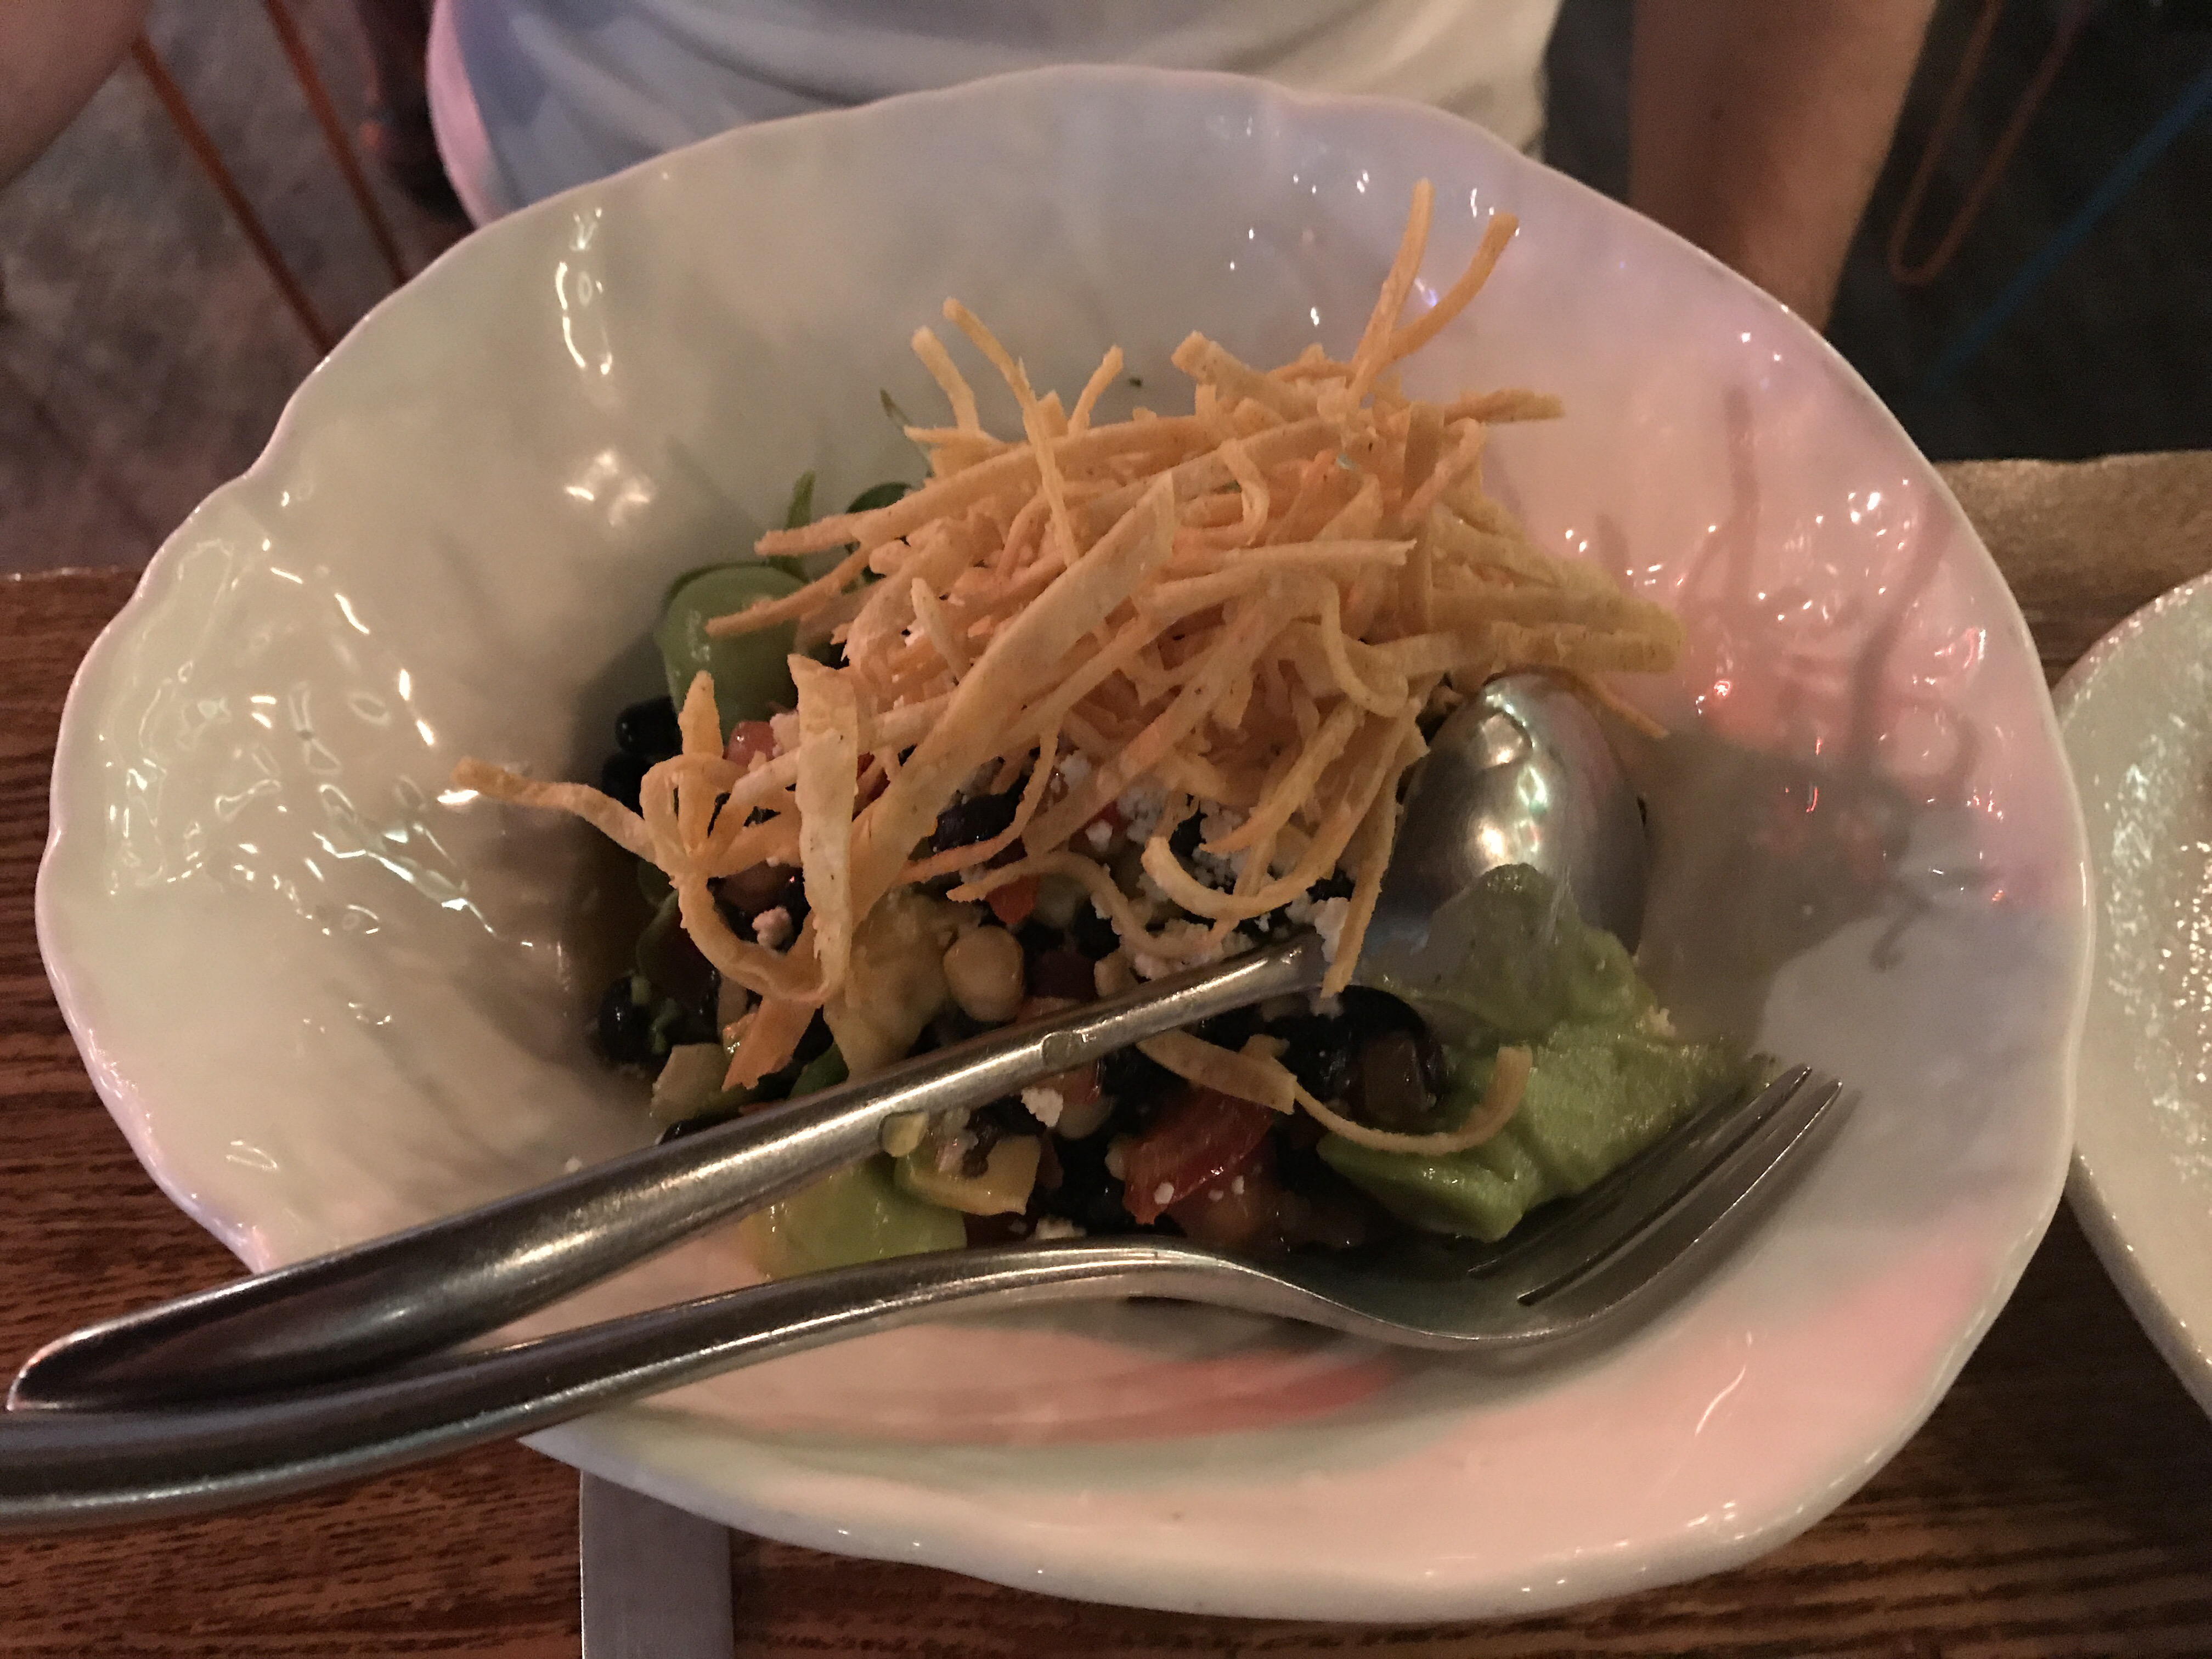 Eating out in Shanghai - Part II - aroundthis.world